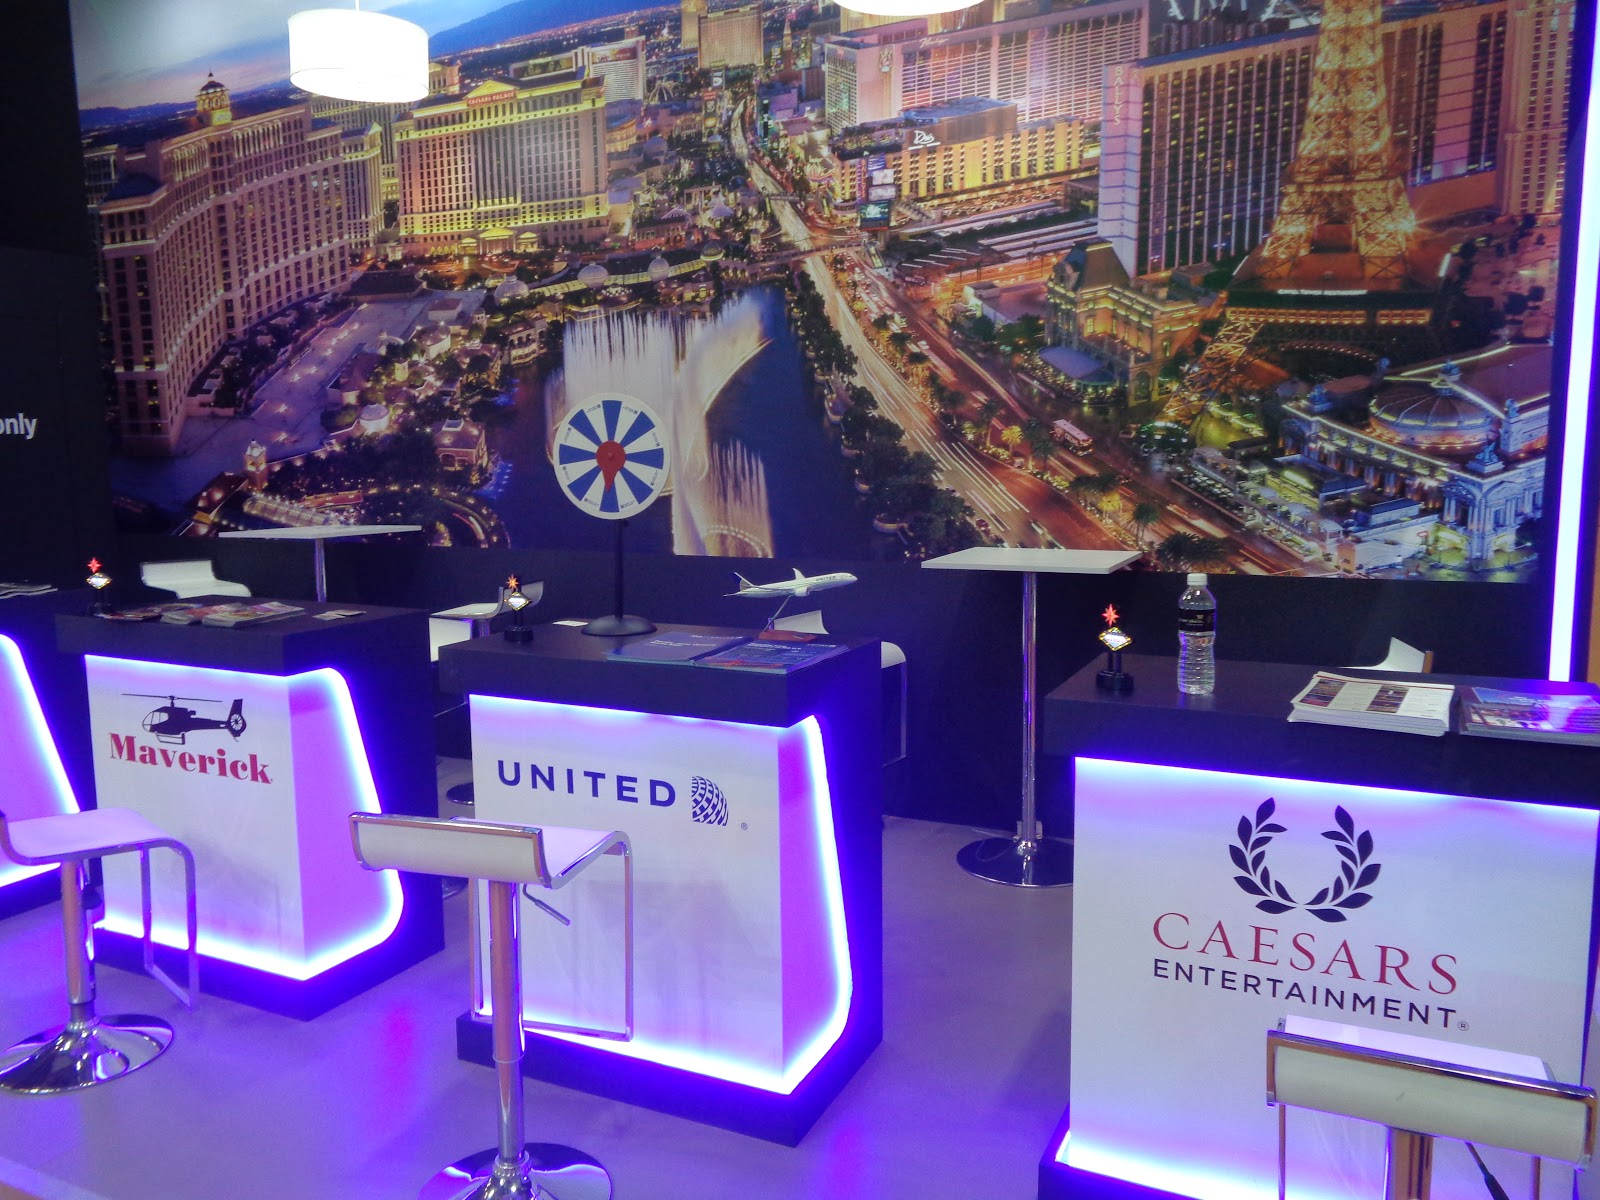 united airlines represented by its singapore branch at the usa pavilion distributes local flight schedules highlighting the two daily flights from singapore